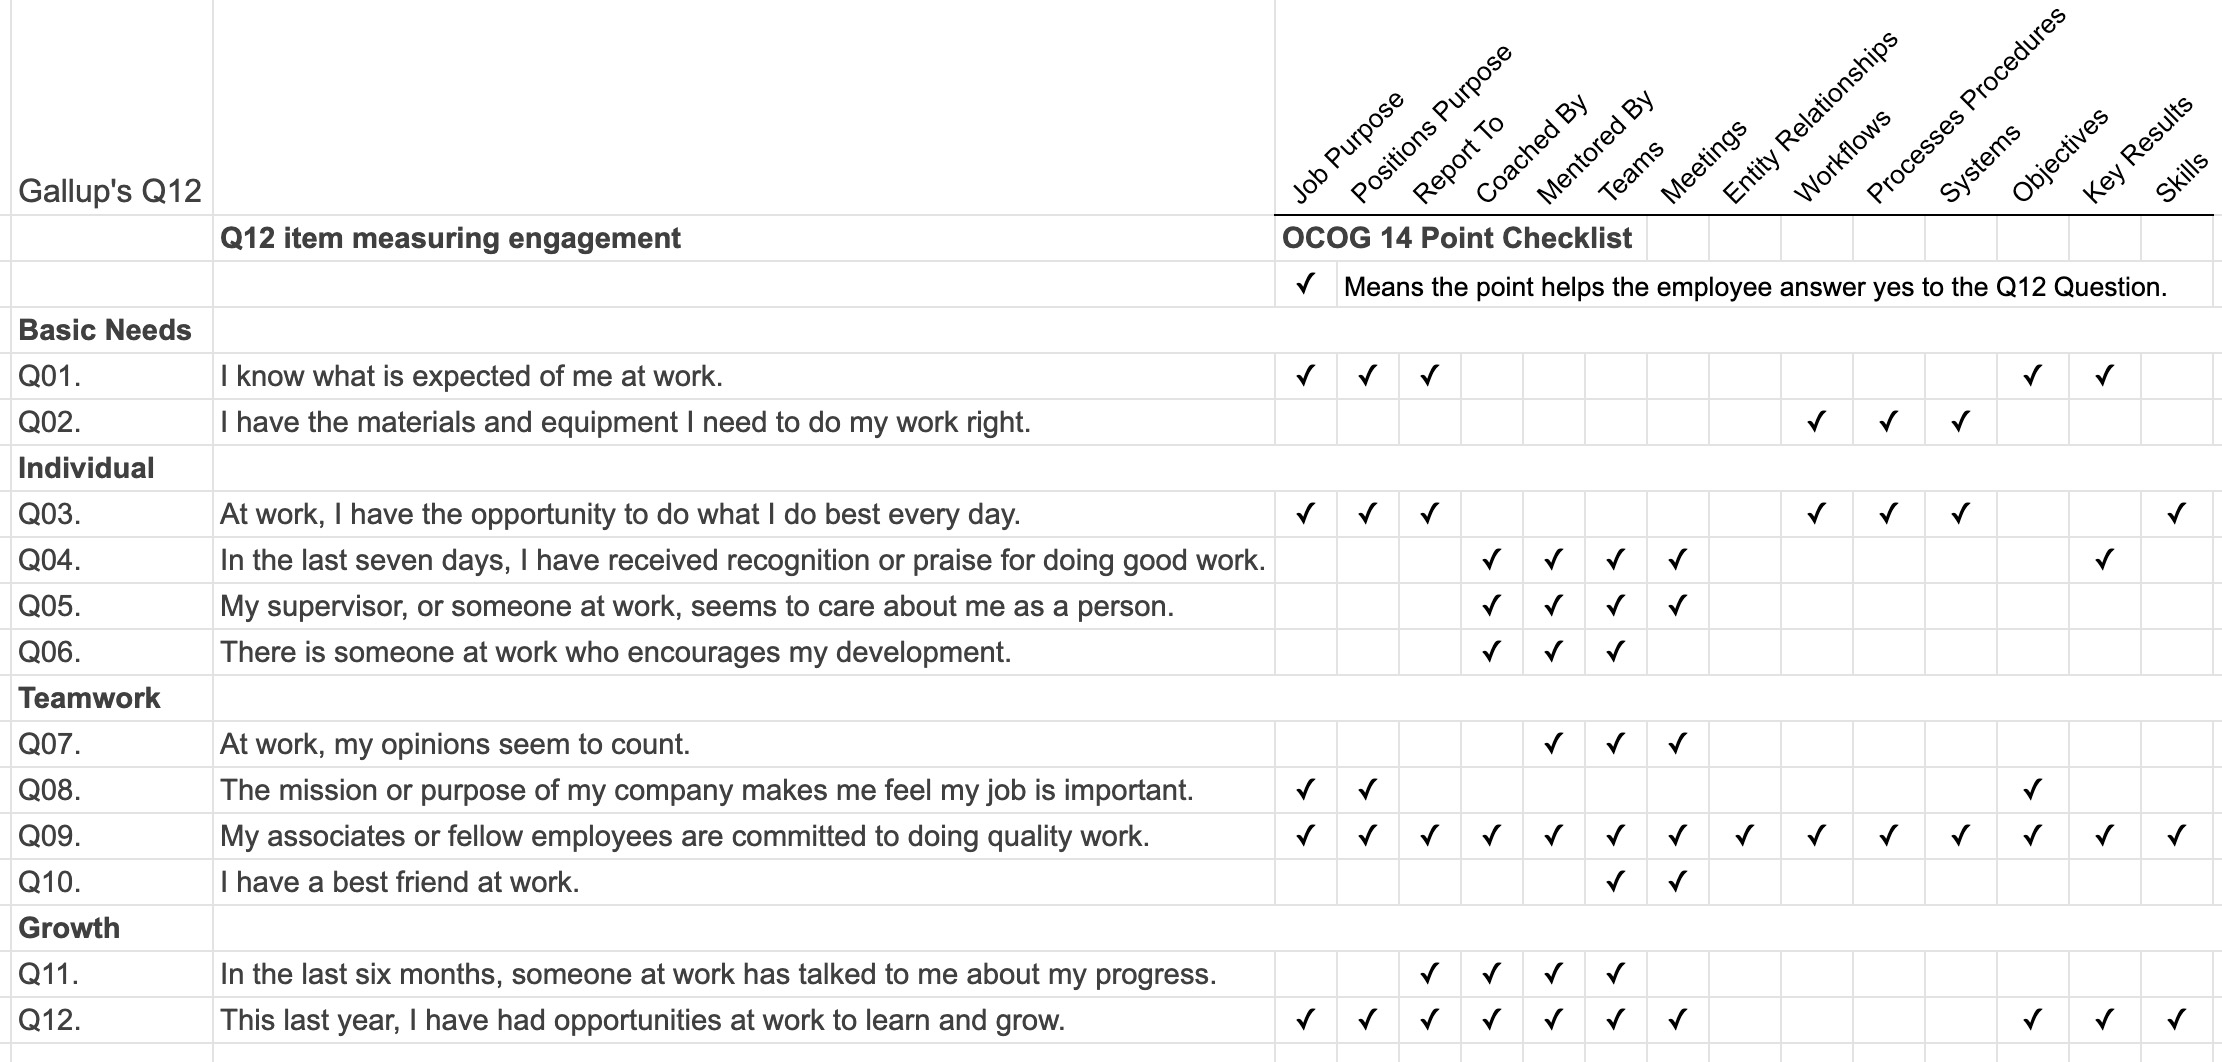 How the OCOG Structure model supports employee engagement and gallups Q12